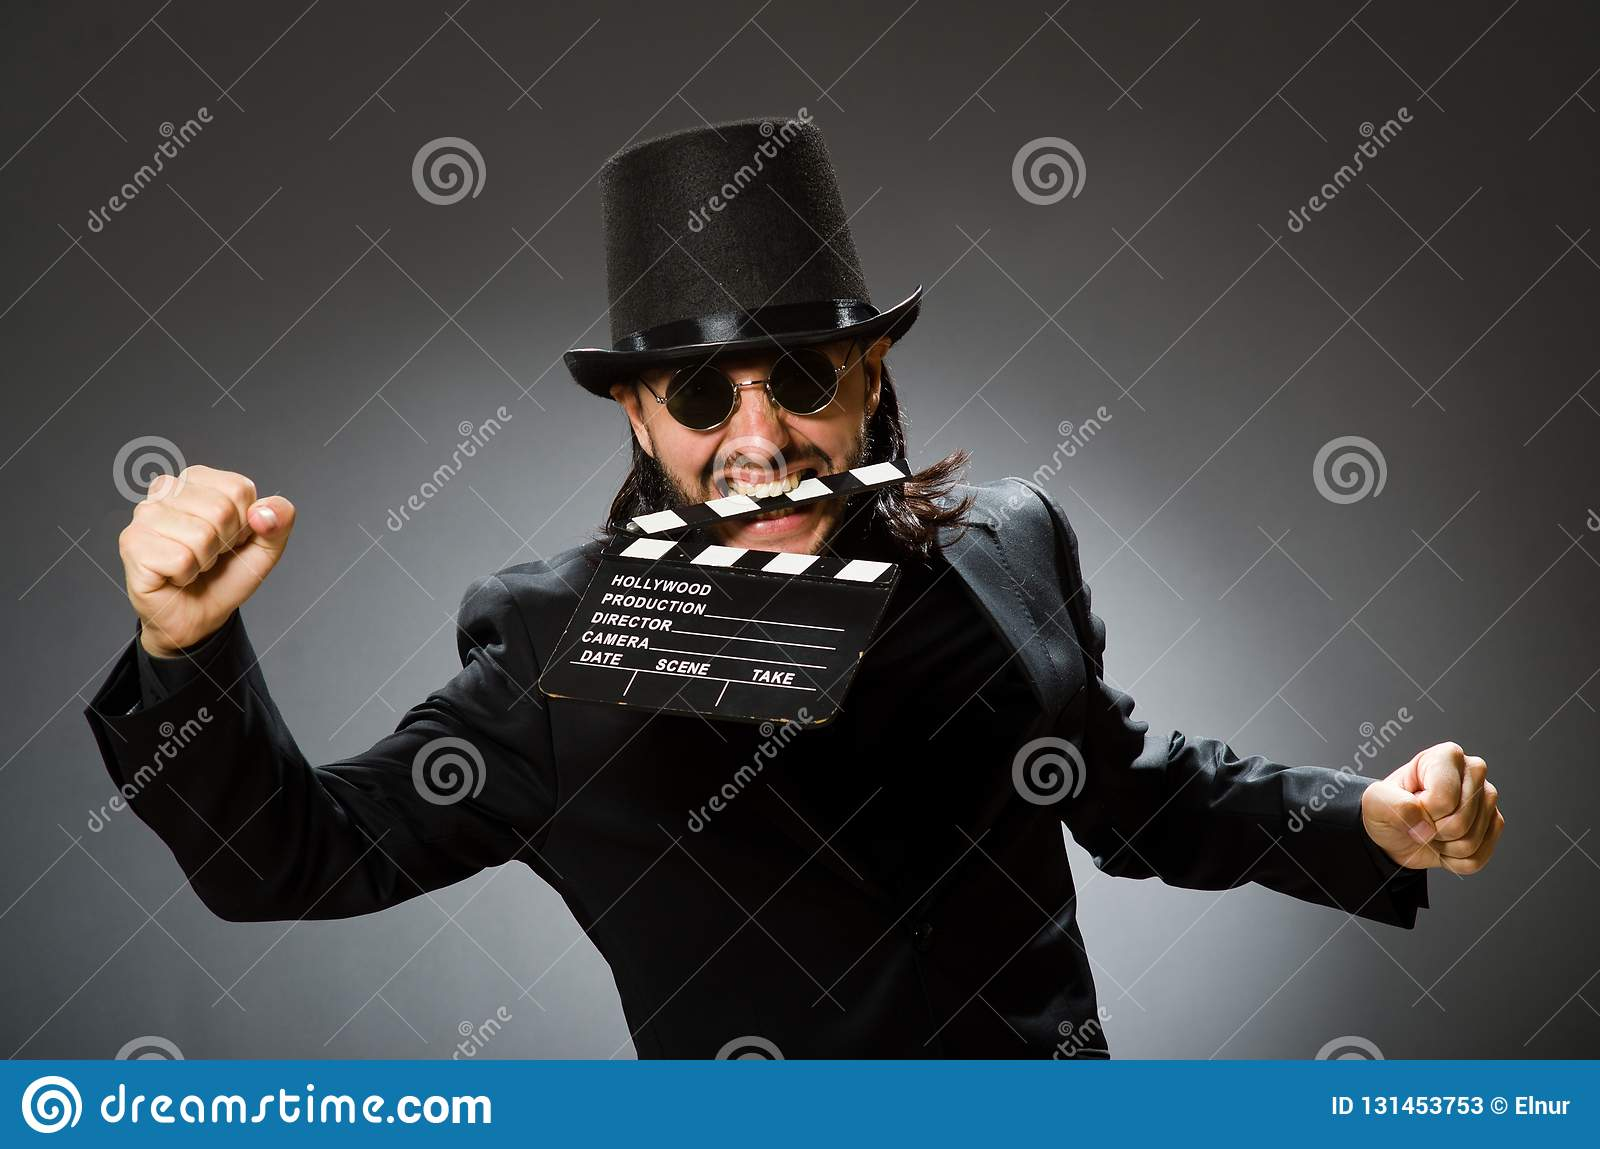 ed6a7b3d789 The Vintage Concept With Man Wearing Black Top Hat Stock Image ...